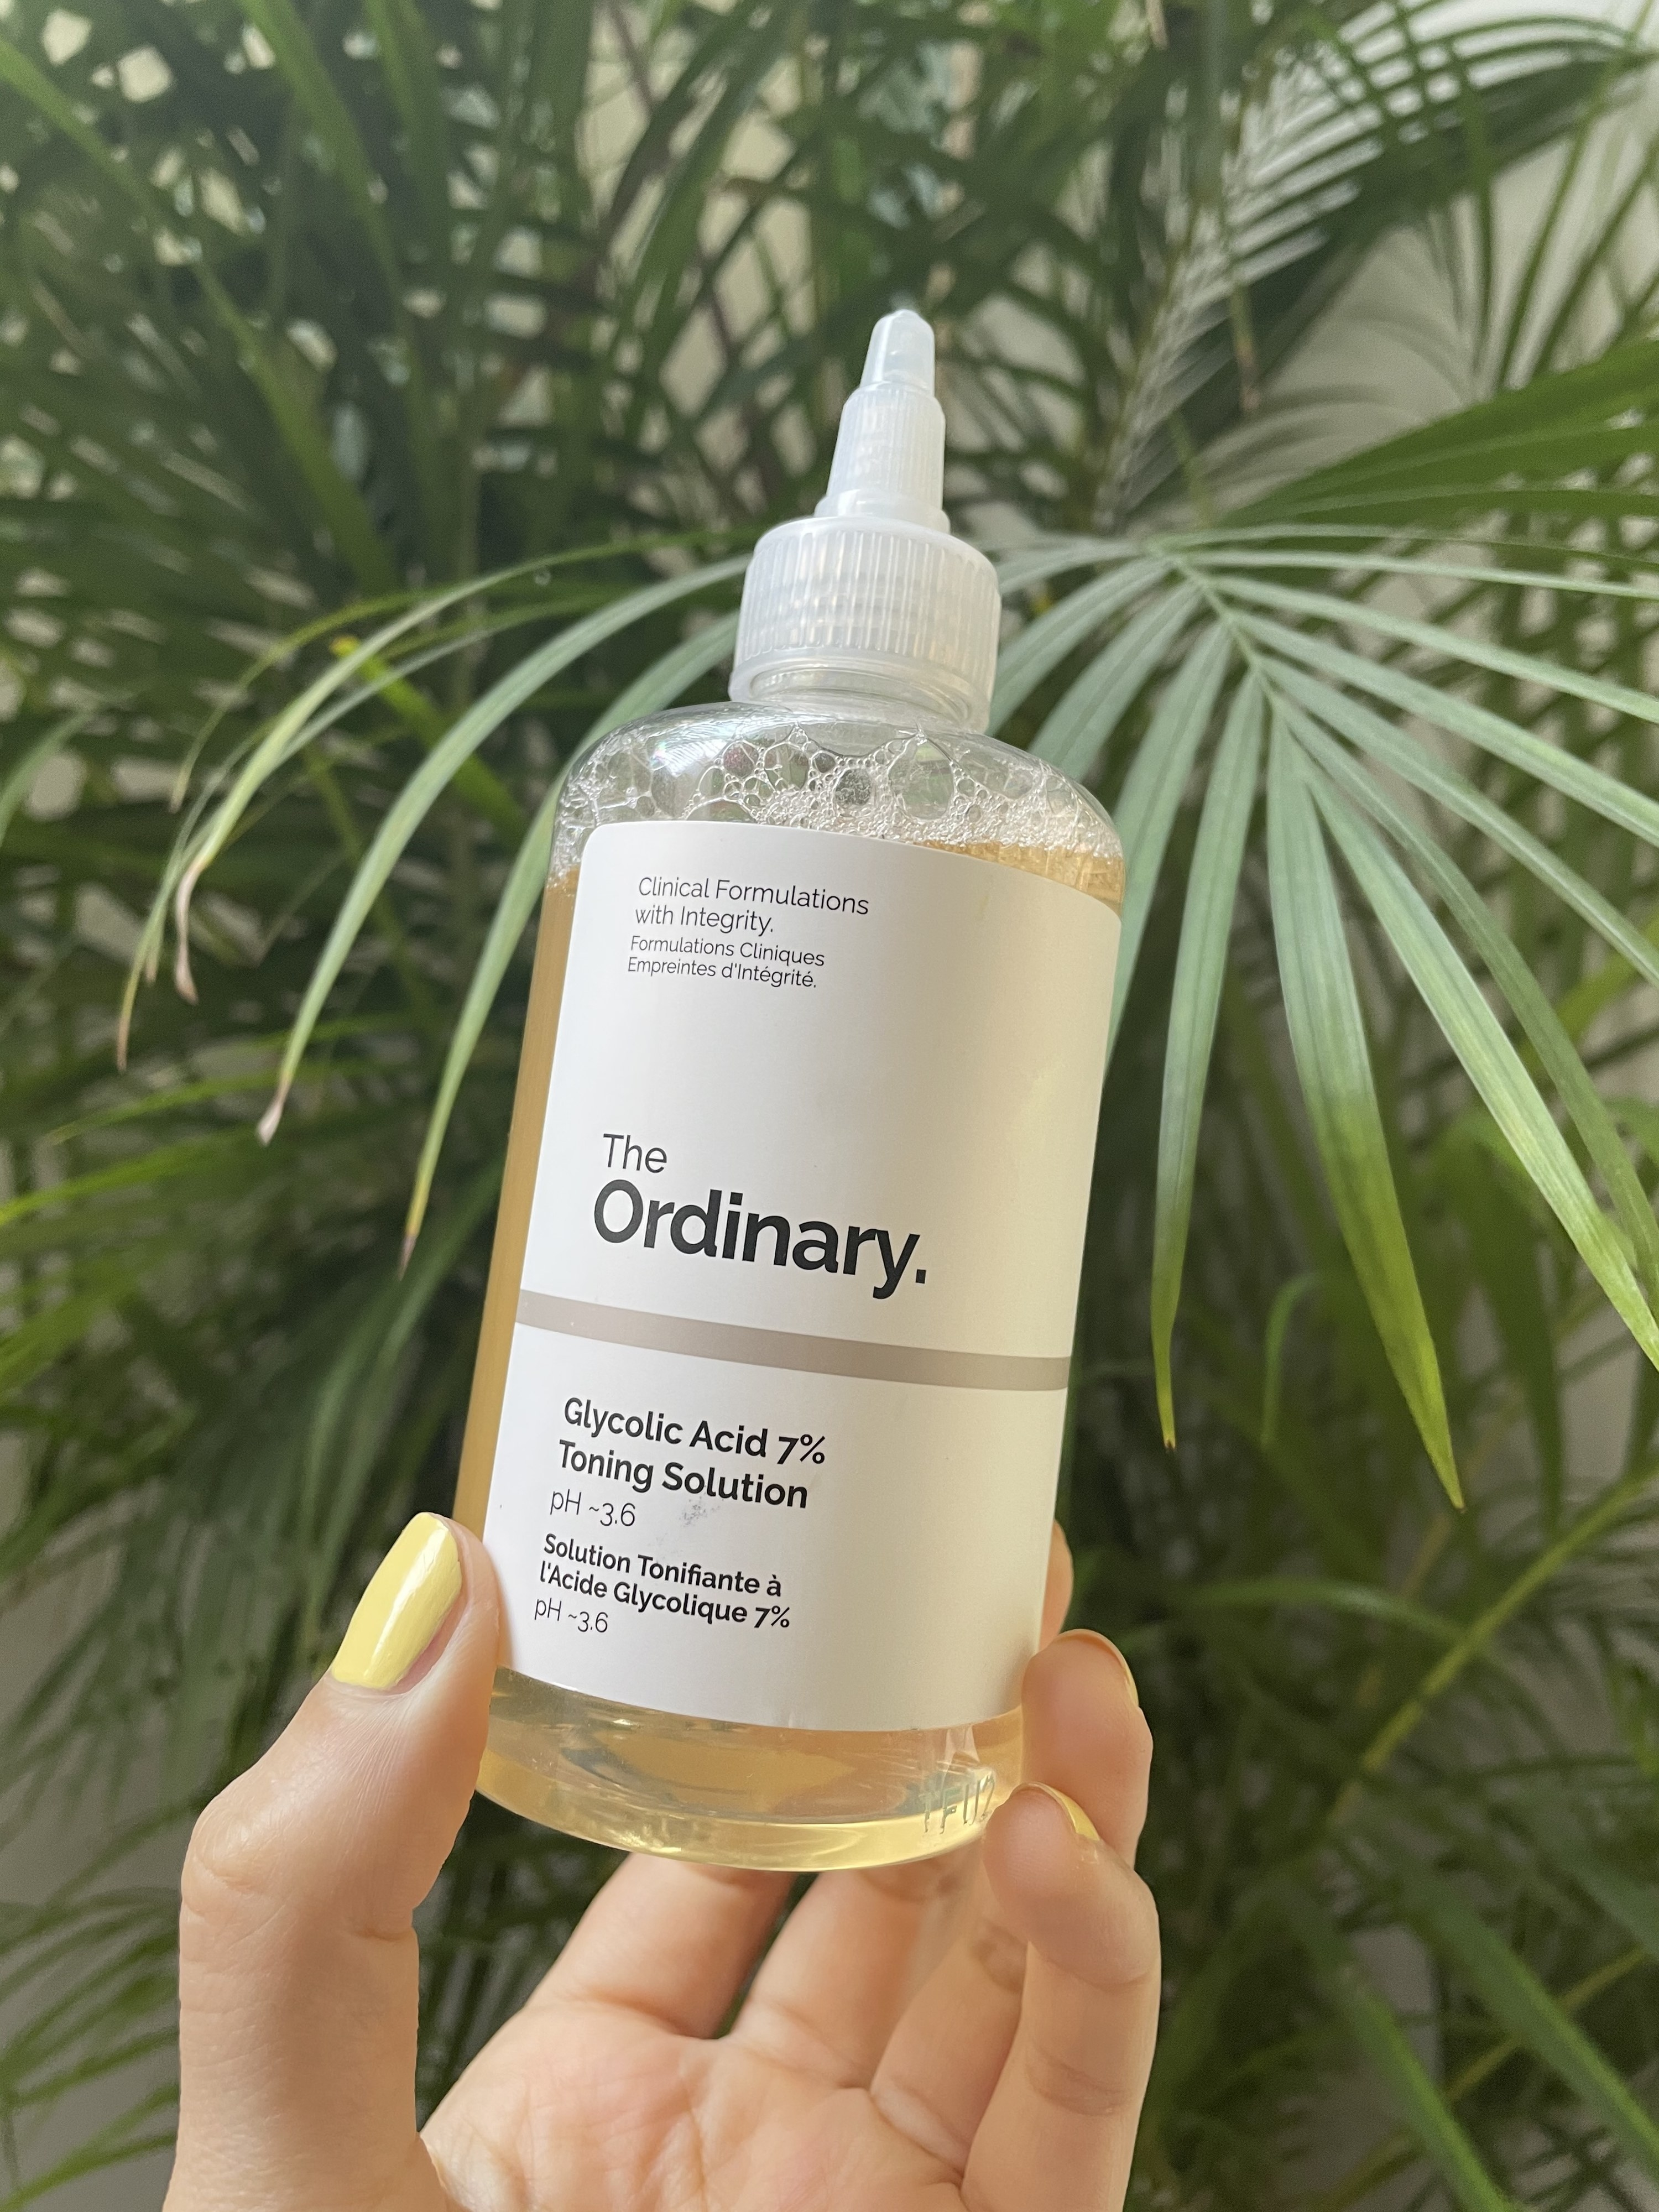 A bottle of The Ordinary's Glycolic Acid Toning Solution